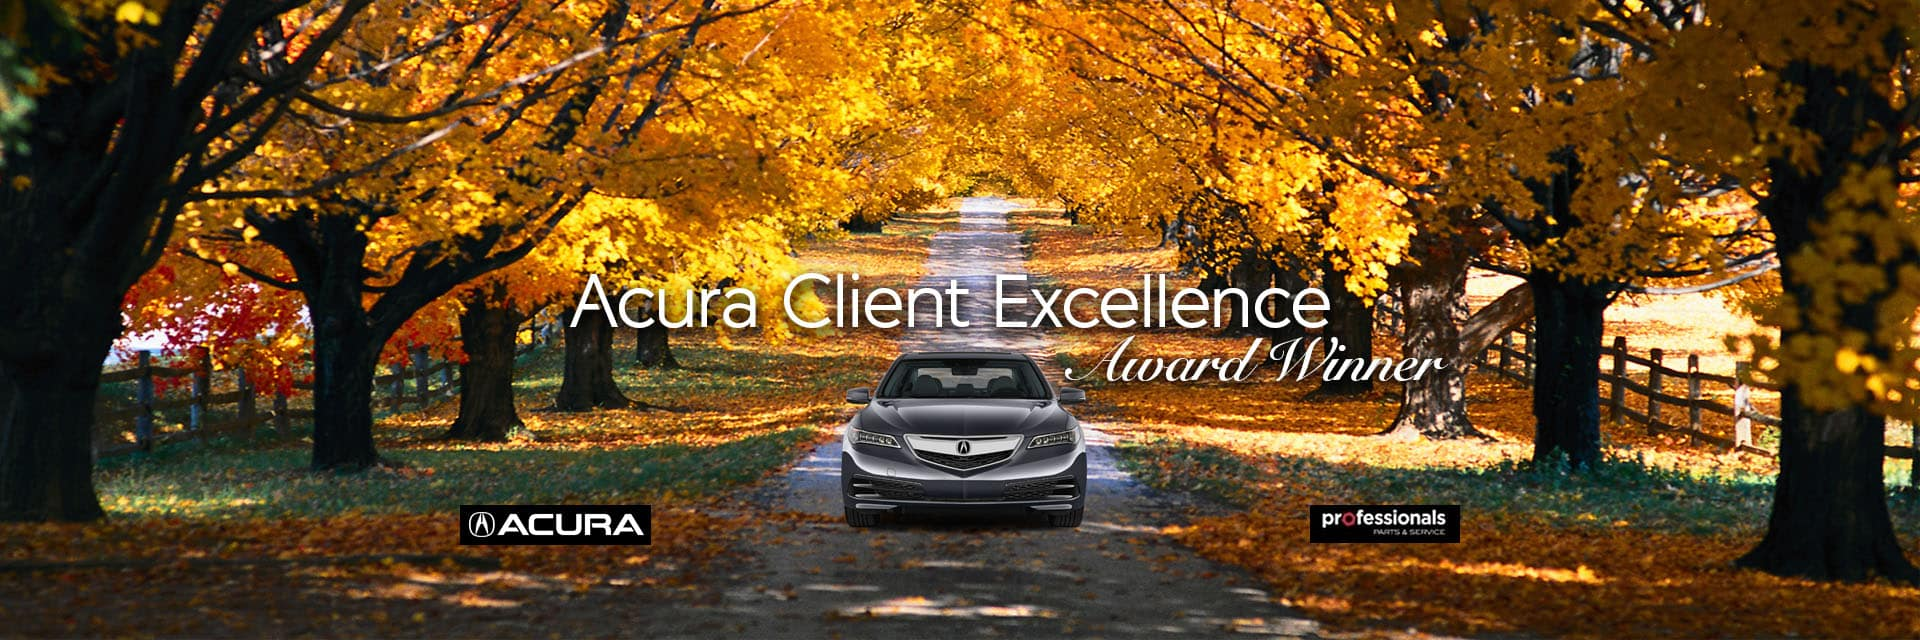 acura award of excellence